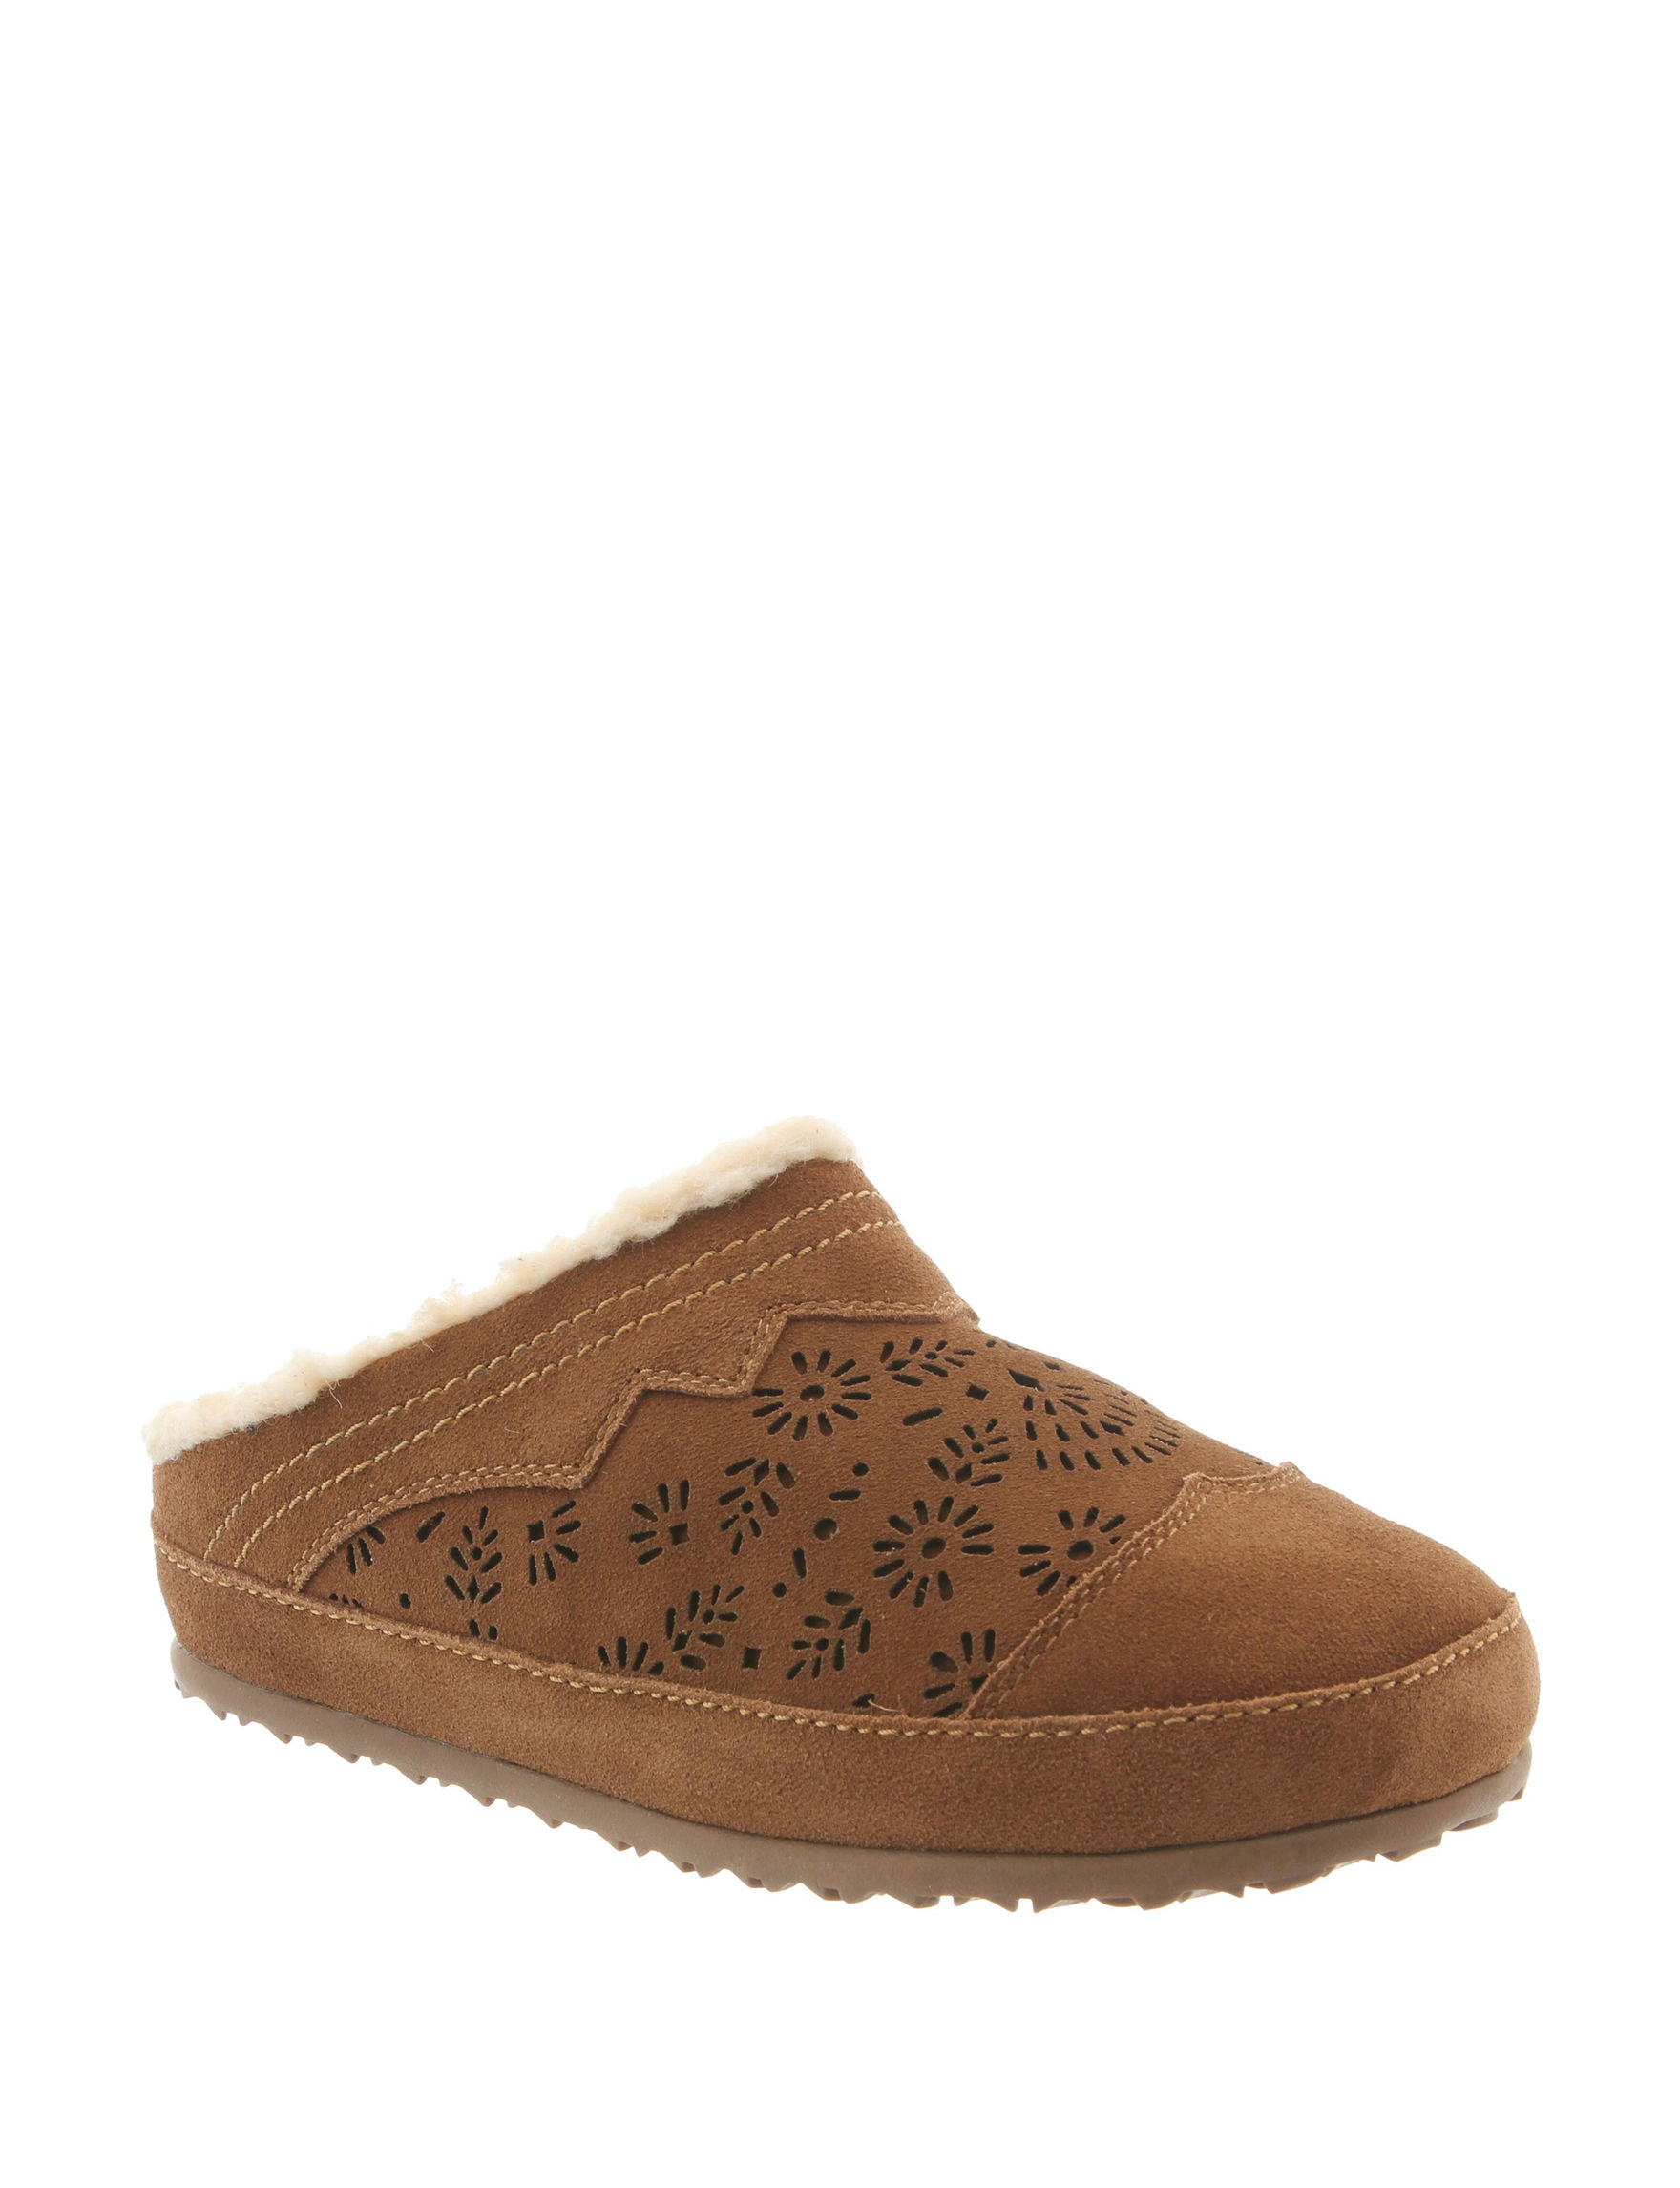 Bearpaw Brown Slipper Shoes